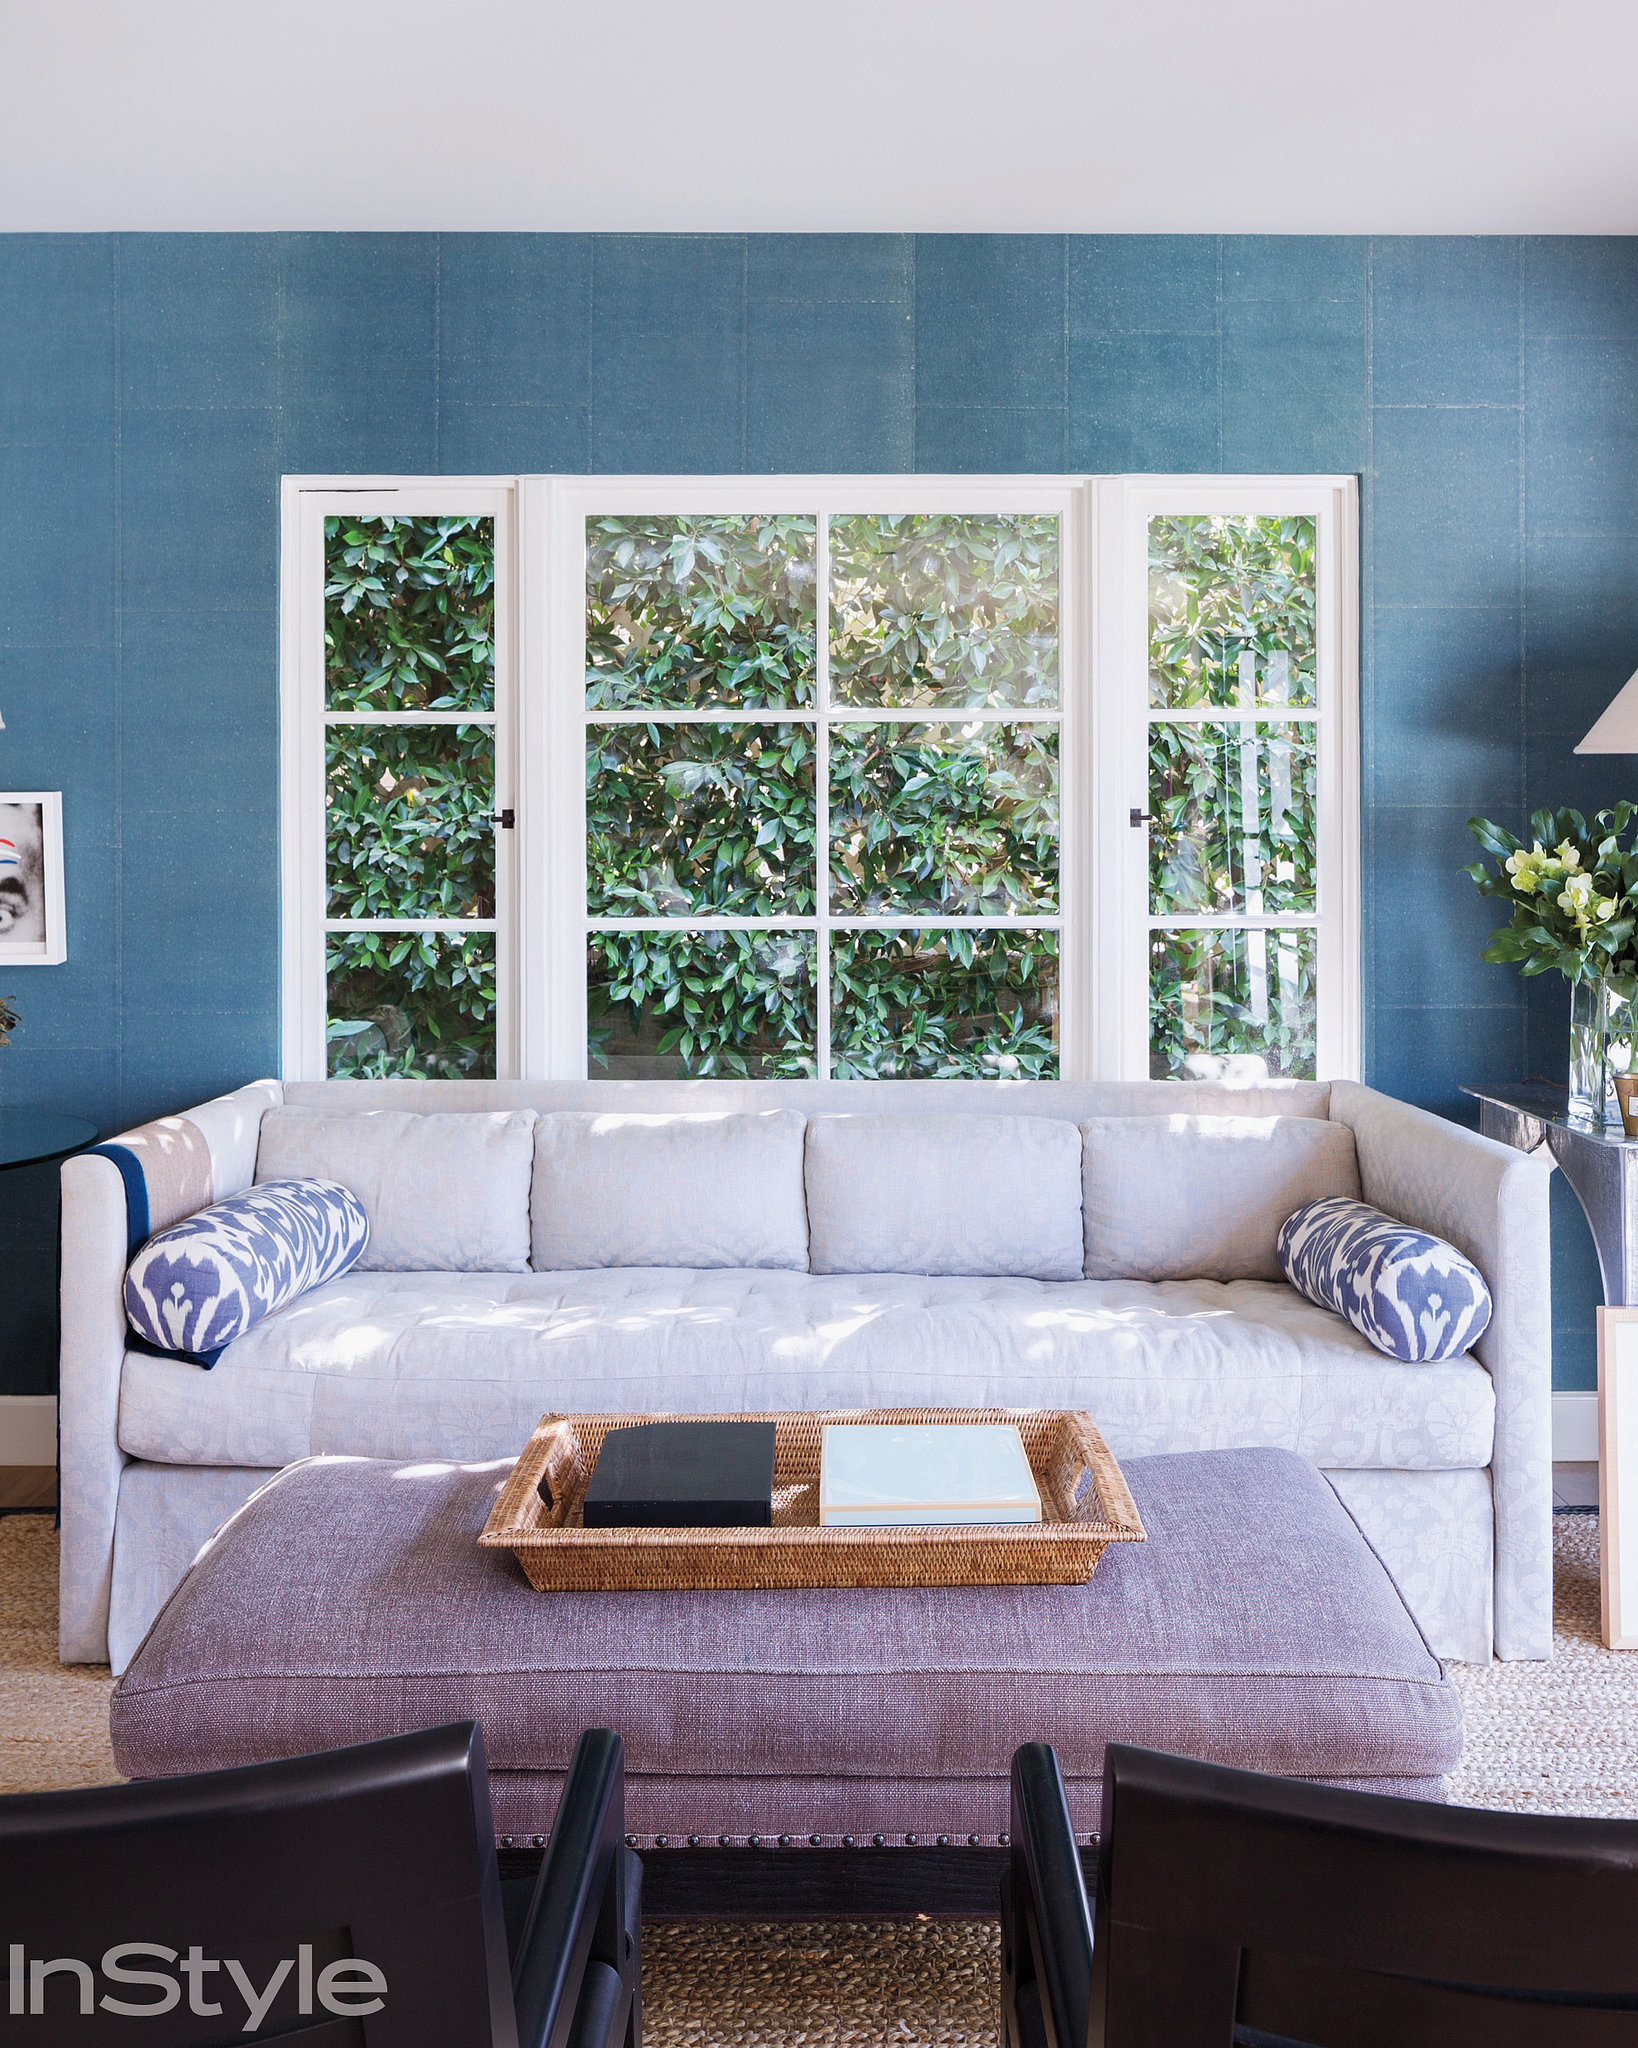 The textural blue wall covering in her living room adds instant serenity. Source: Dean Kaufman for InStyle